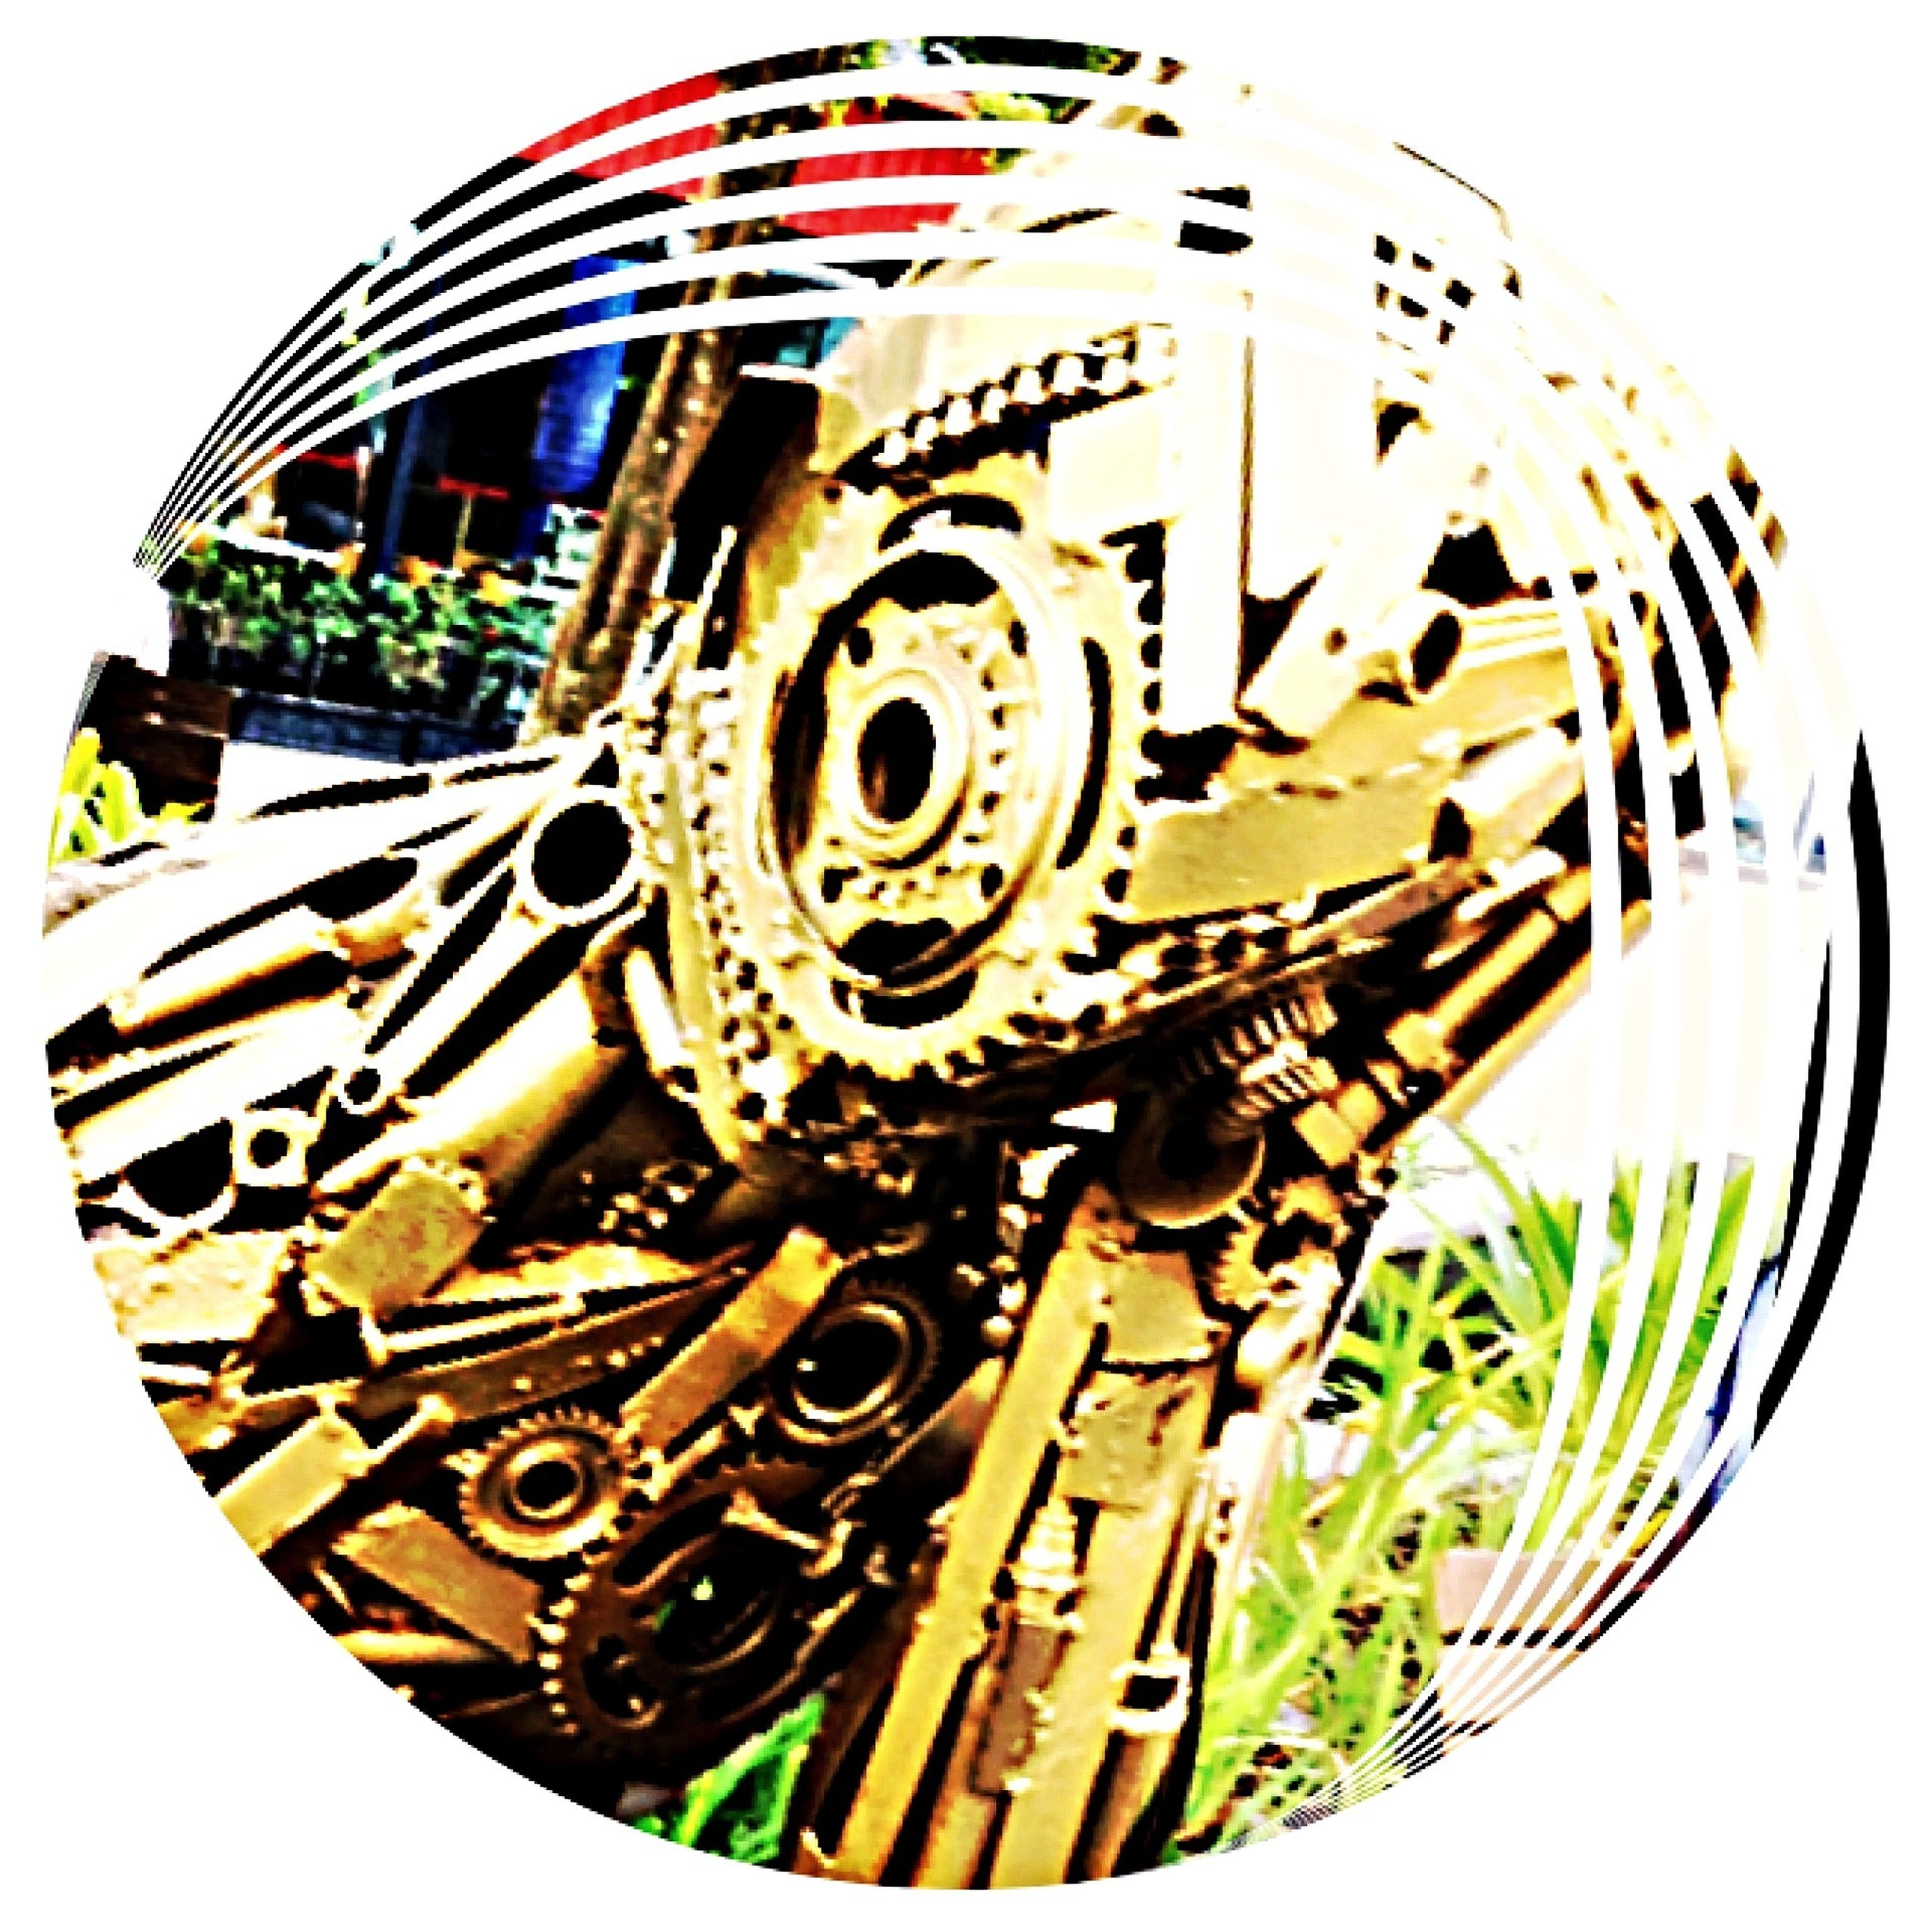 close-up, arts culture and entertainment, metal, low angle view, amusement park, wheel, outdoors, rusty, day, amusement park ride, abandoned, no people, obsolete, metallic, tire, old, clear sky, transportation, circle, part of